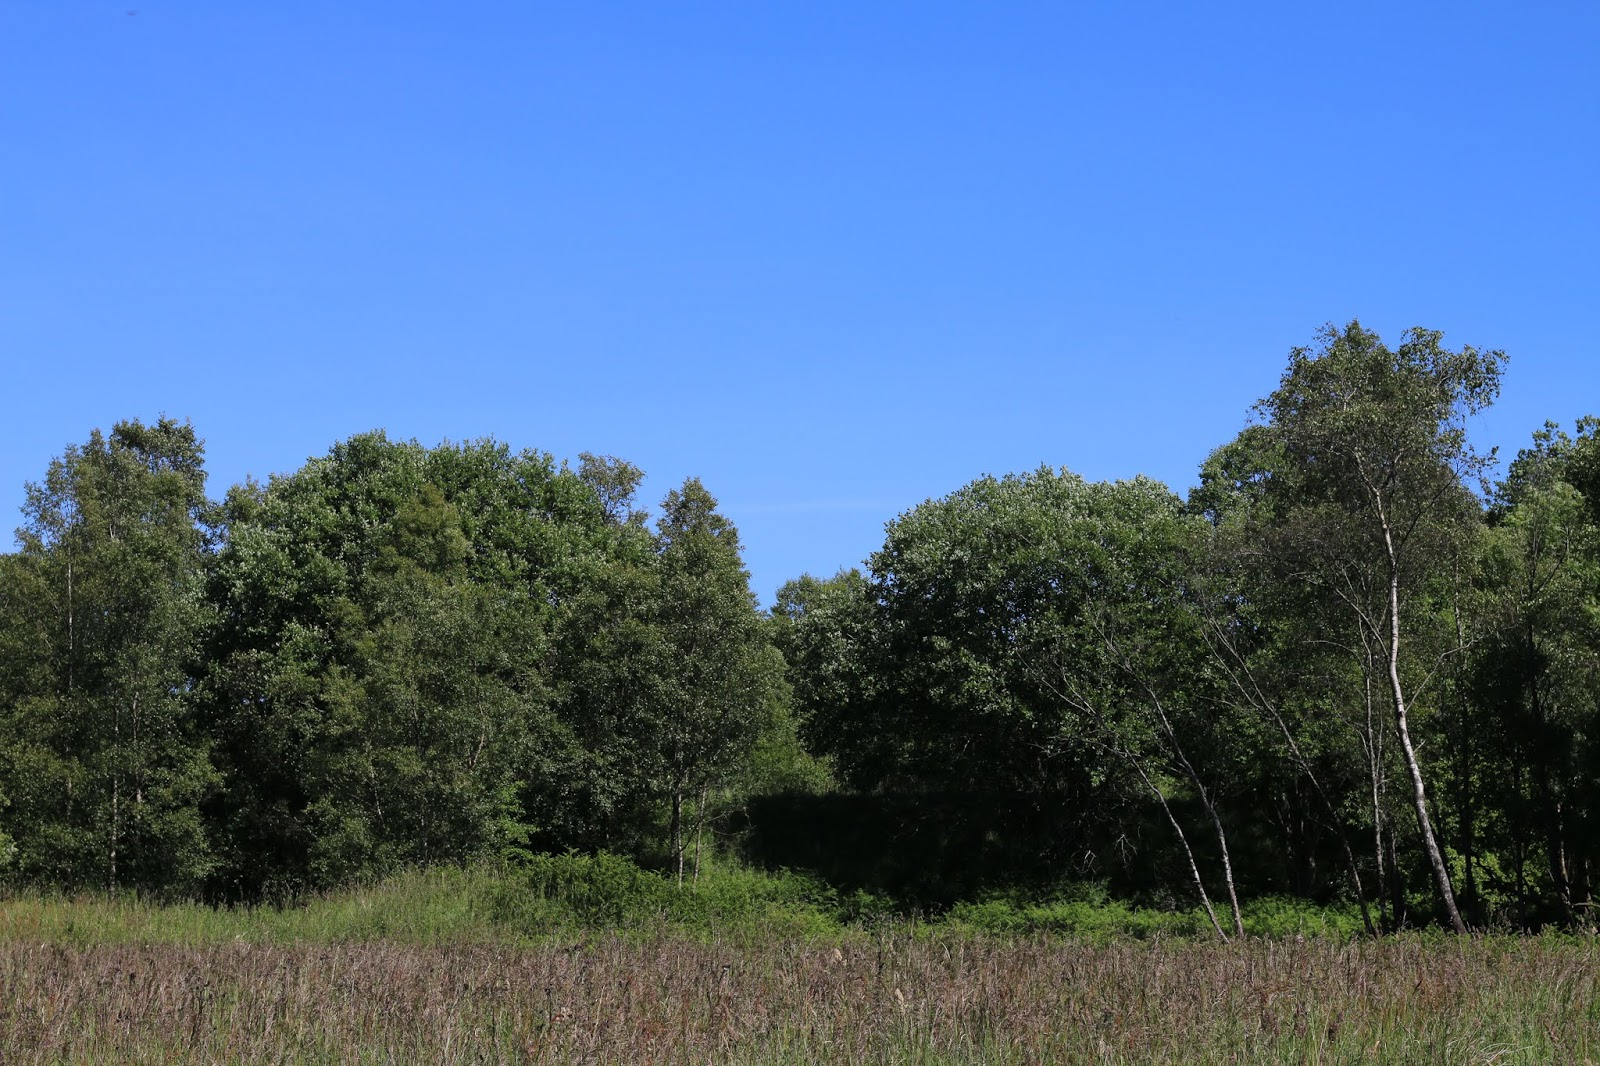 scenic view of trees against a clear blue sky